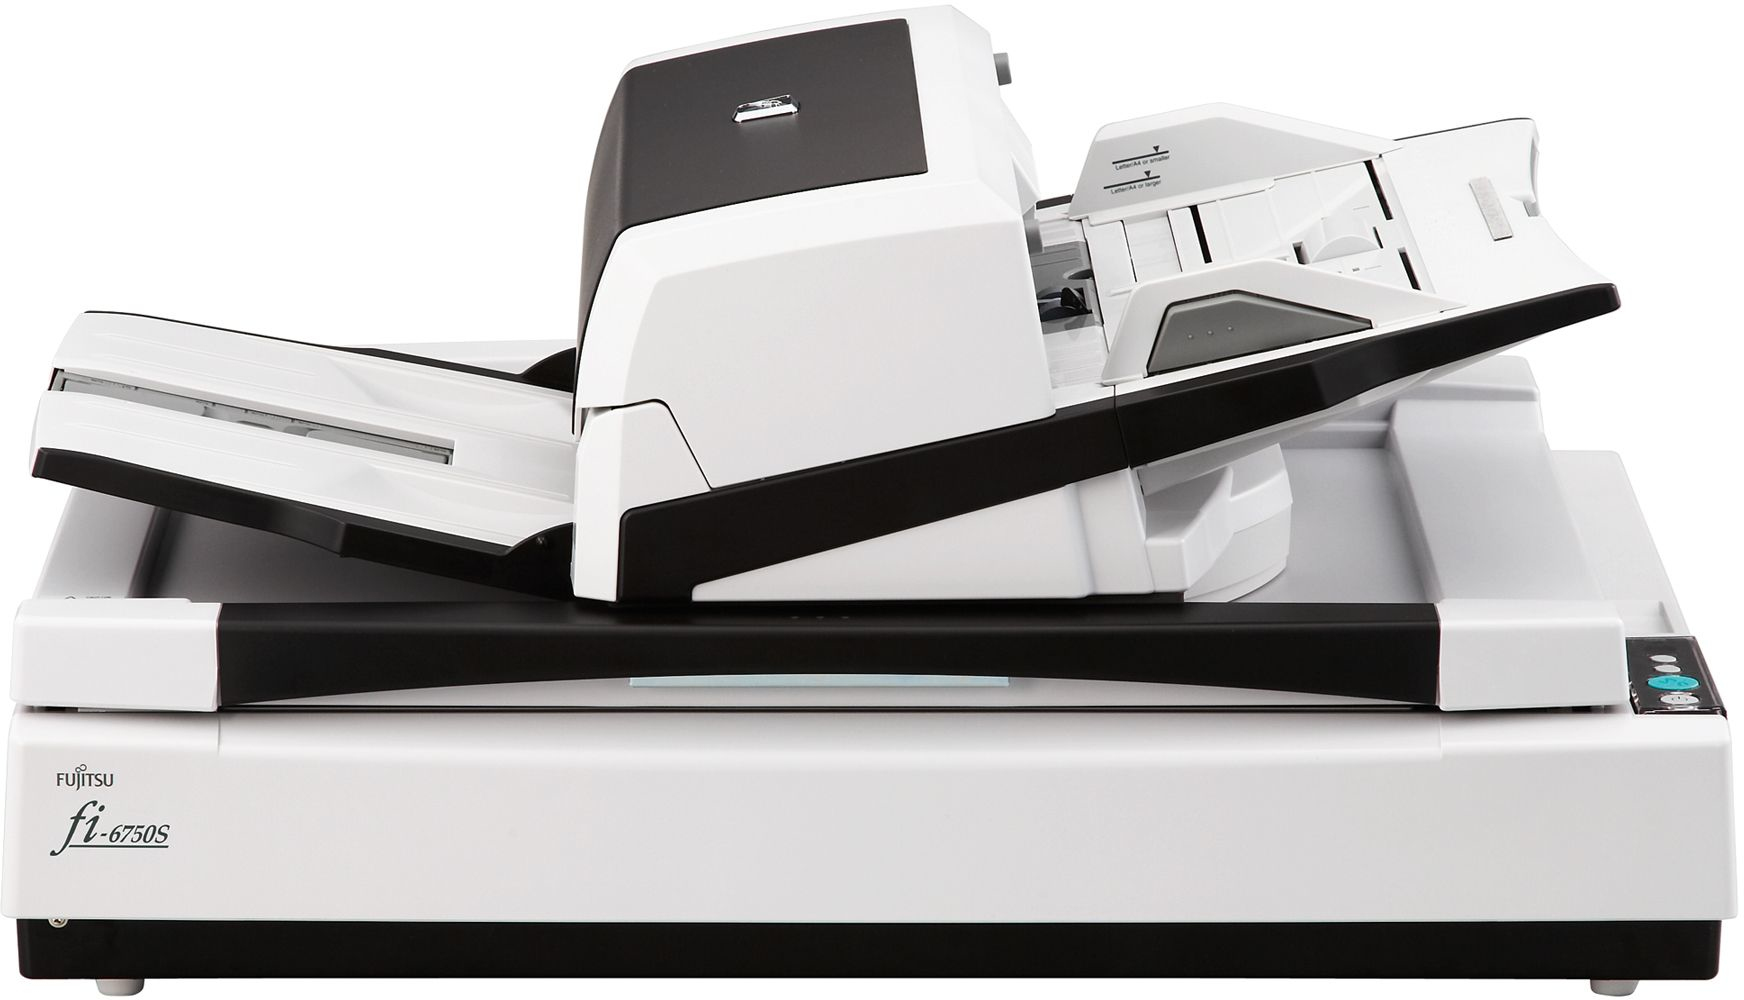 FUJITSU fi-6750s Scanner A3 color USB2.0 Flatbed ADF simplex 55ppm TWAIN ISIS PaperStream Software